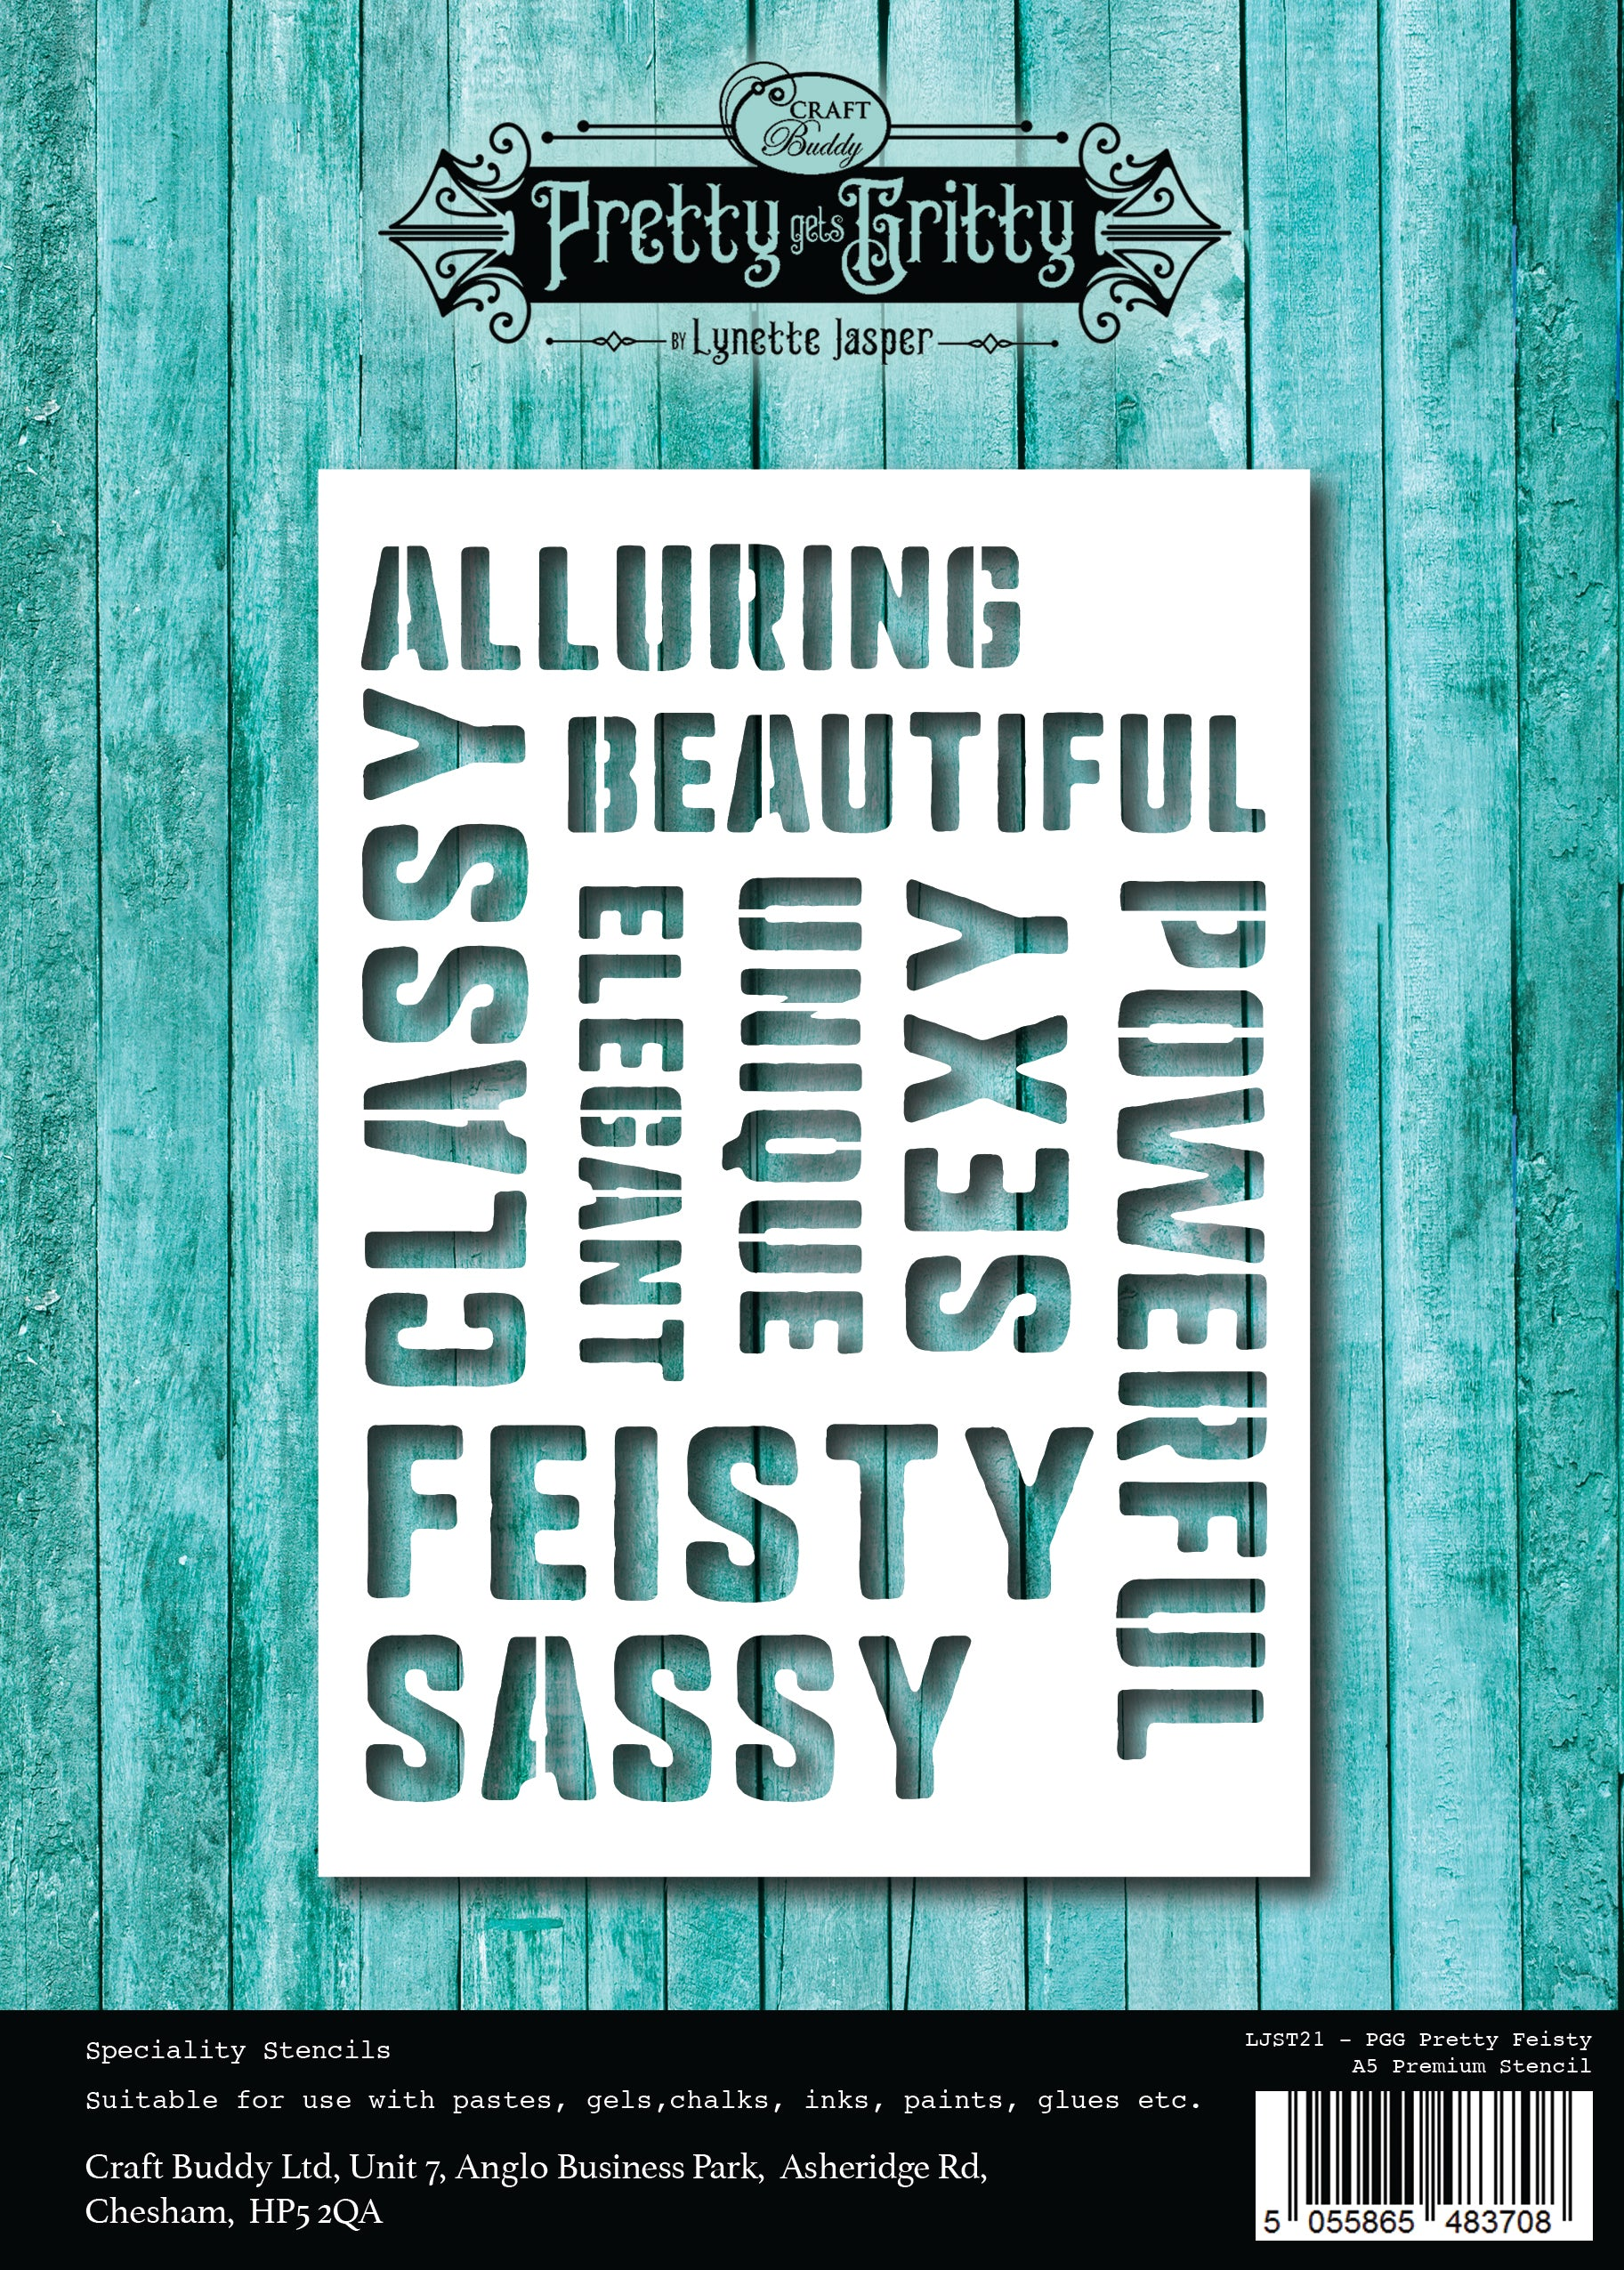 Pretty Gets Gritty A5 Stencil - Pretty Feisty